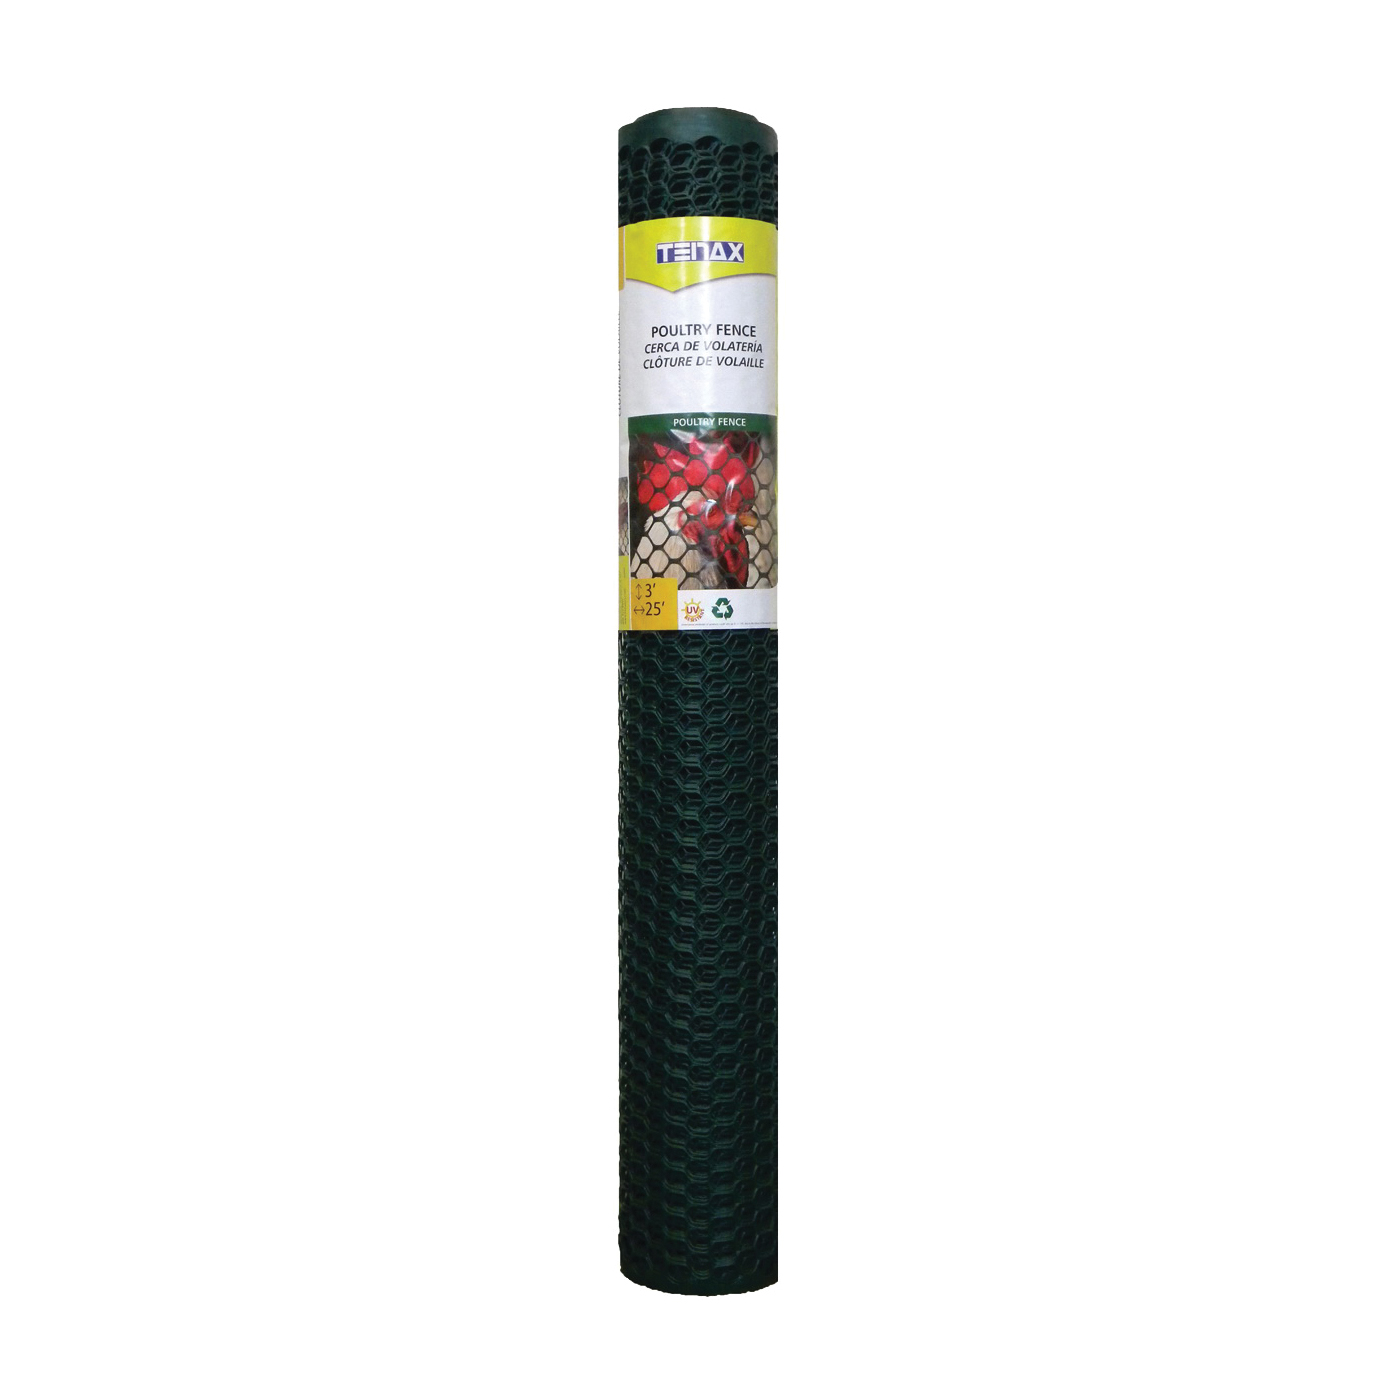 Picture of TENAX 090786 Mult-purpose Poultry Fence, 25 ft L, 3 ft W, Hexagonal Mesh, 3/4 x 3/4 in Mesh, Plastic, Green